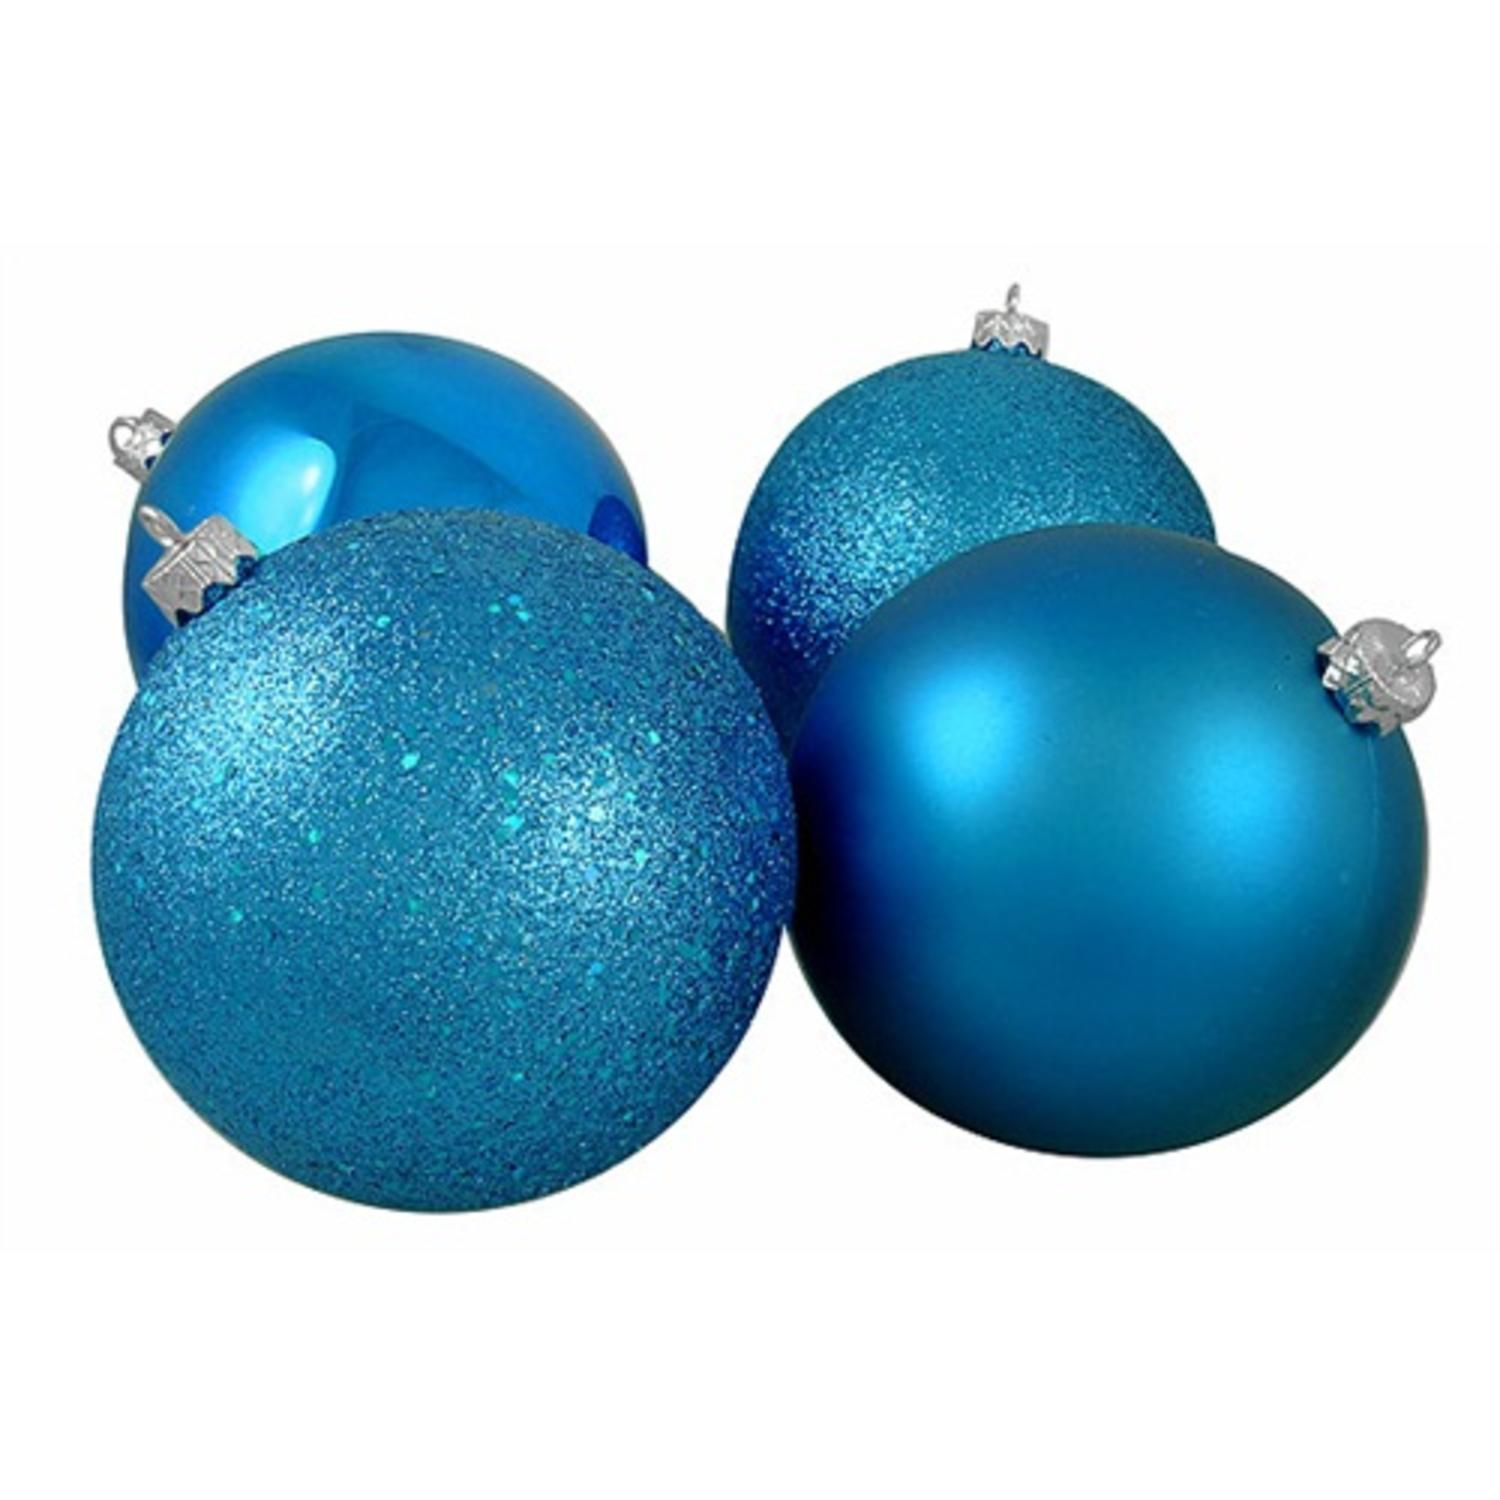 """4ct Turquoise Blue 4-Finish Shatterproof Christmas Ball Ornaments 10"""" (250mm)"""